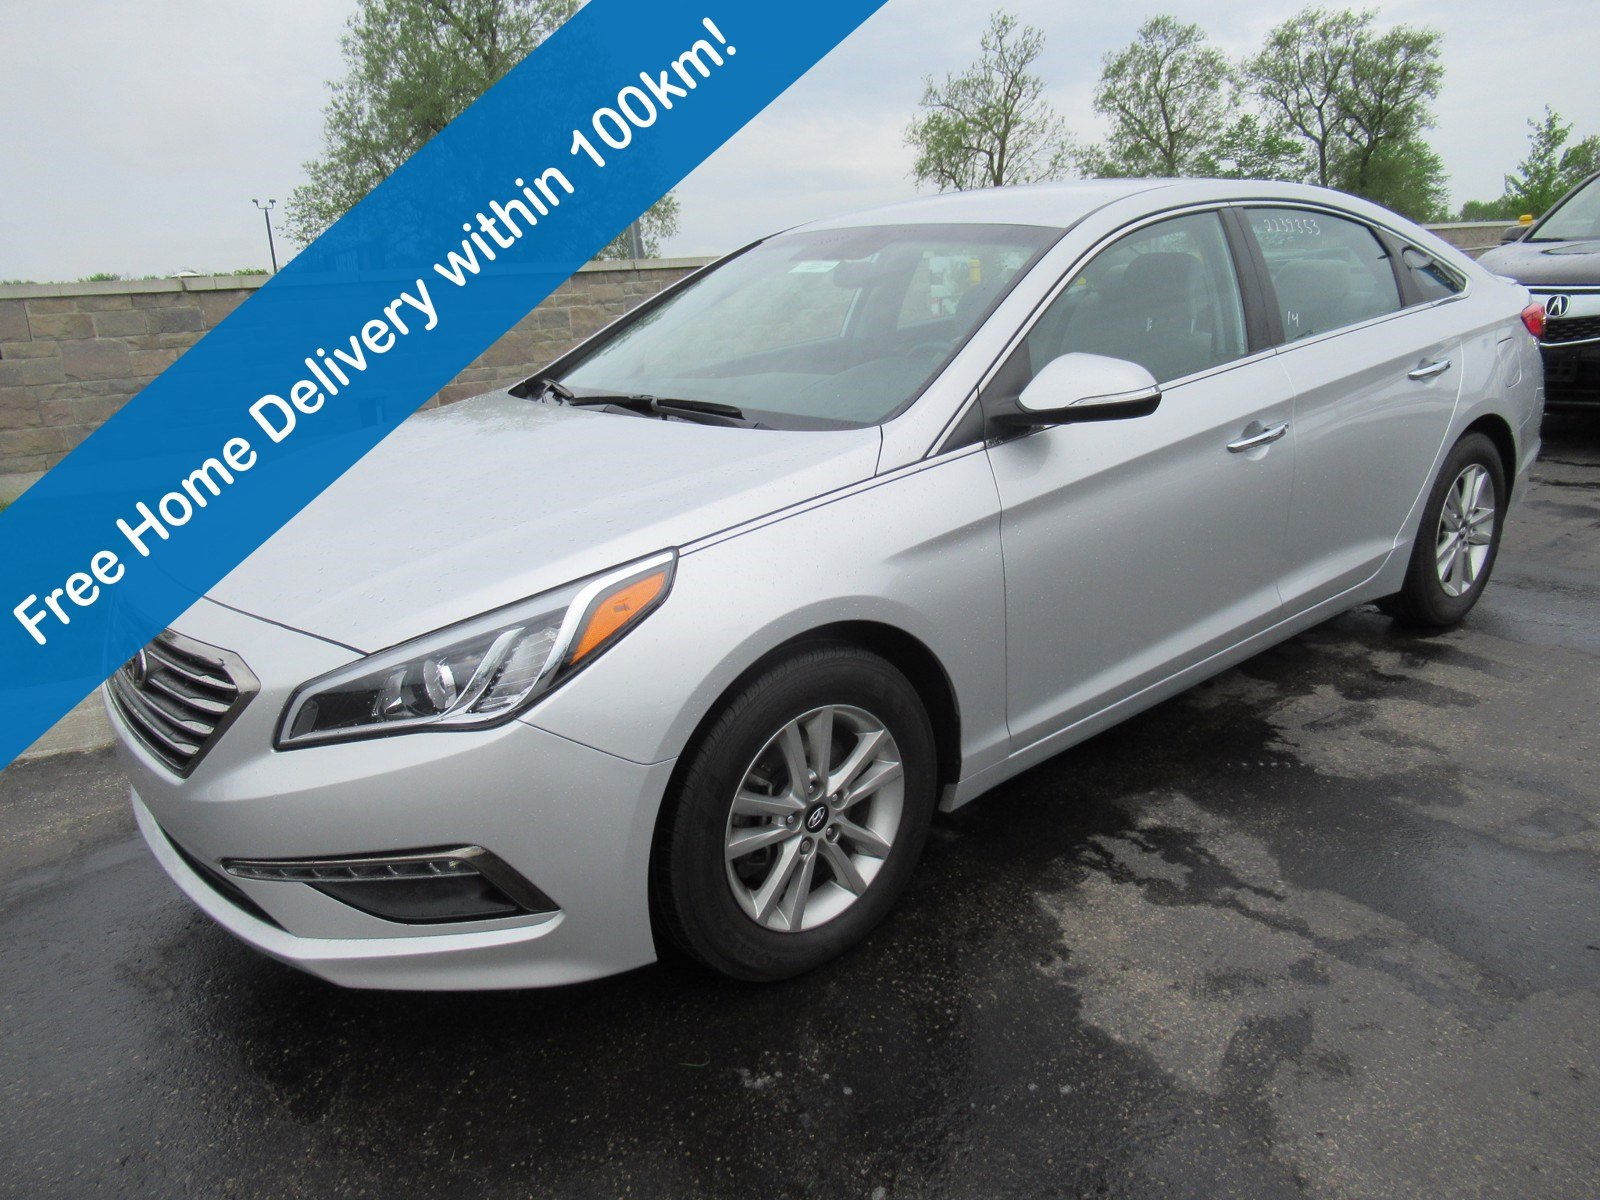 Certified Pre-Owned 2015 Hyundai Sonata GLS, Reverse Camera, Heated Seats+Steering Wheel, Blindspot Monitor, Keyless Entry, Alloys & More!